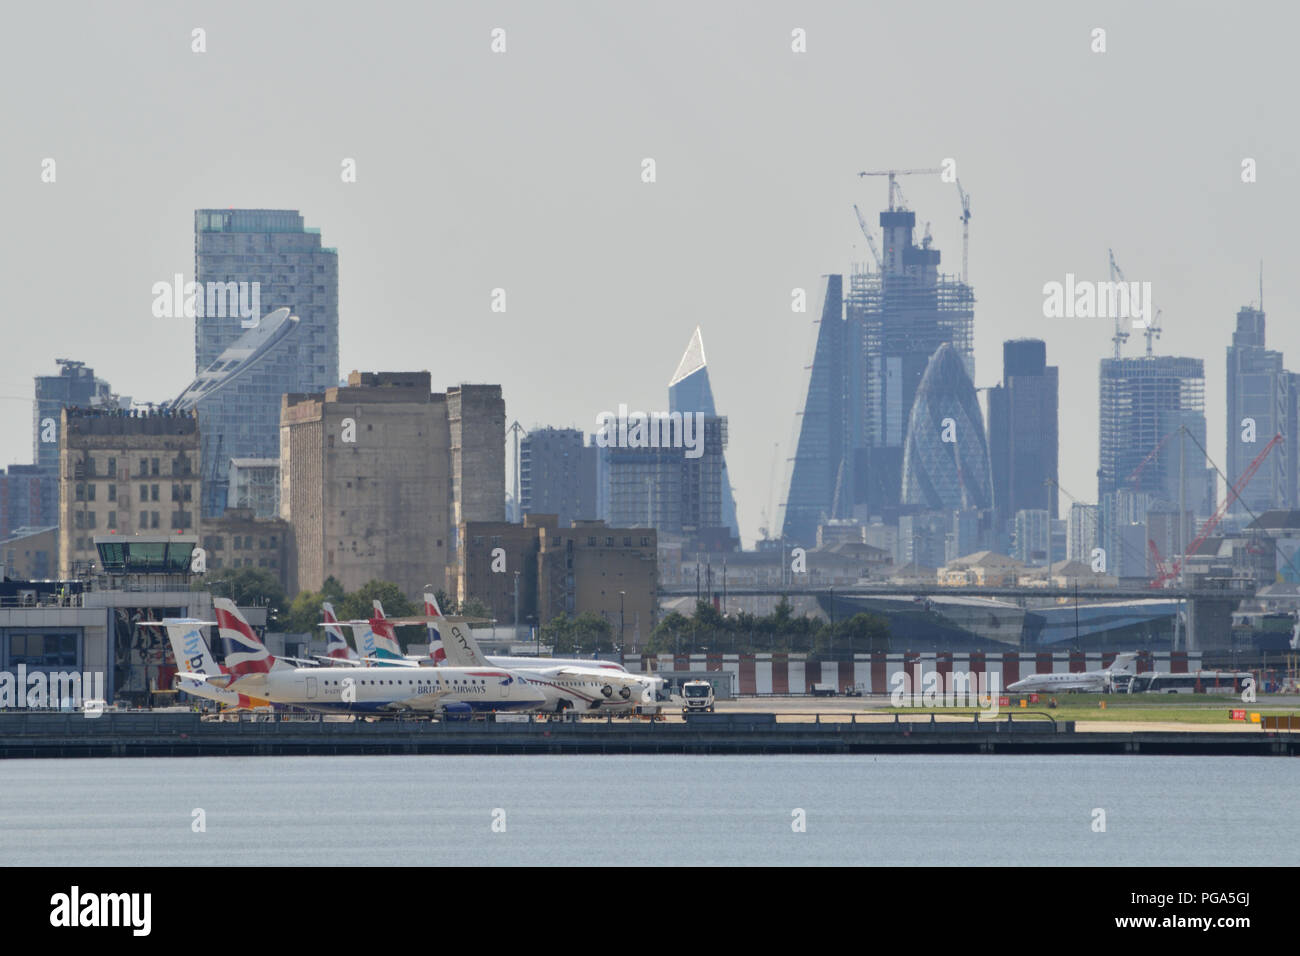 Planes wait on the apron at London City Airport with the City of London skyline in the background - Stock Image